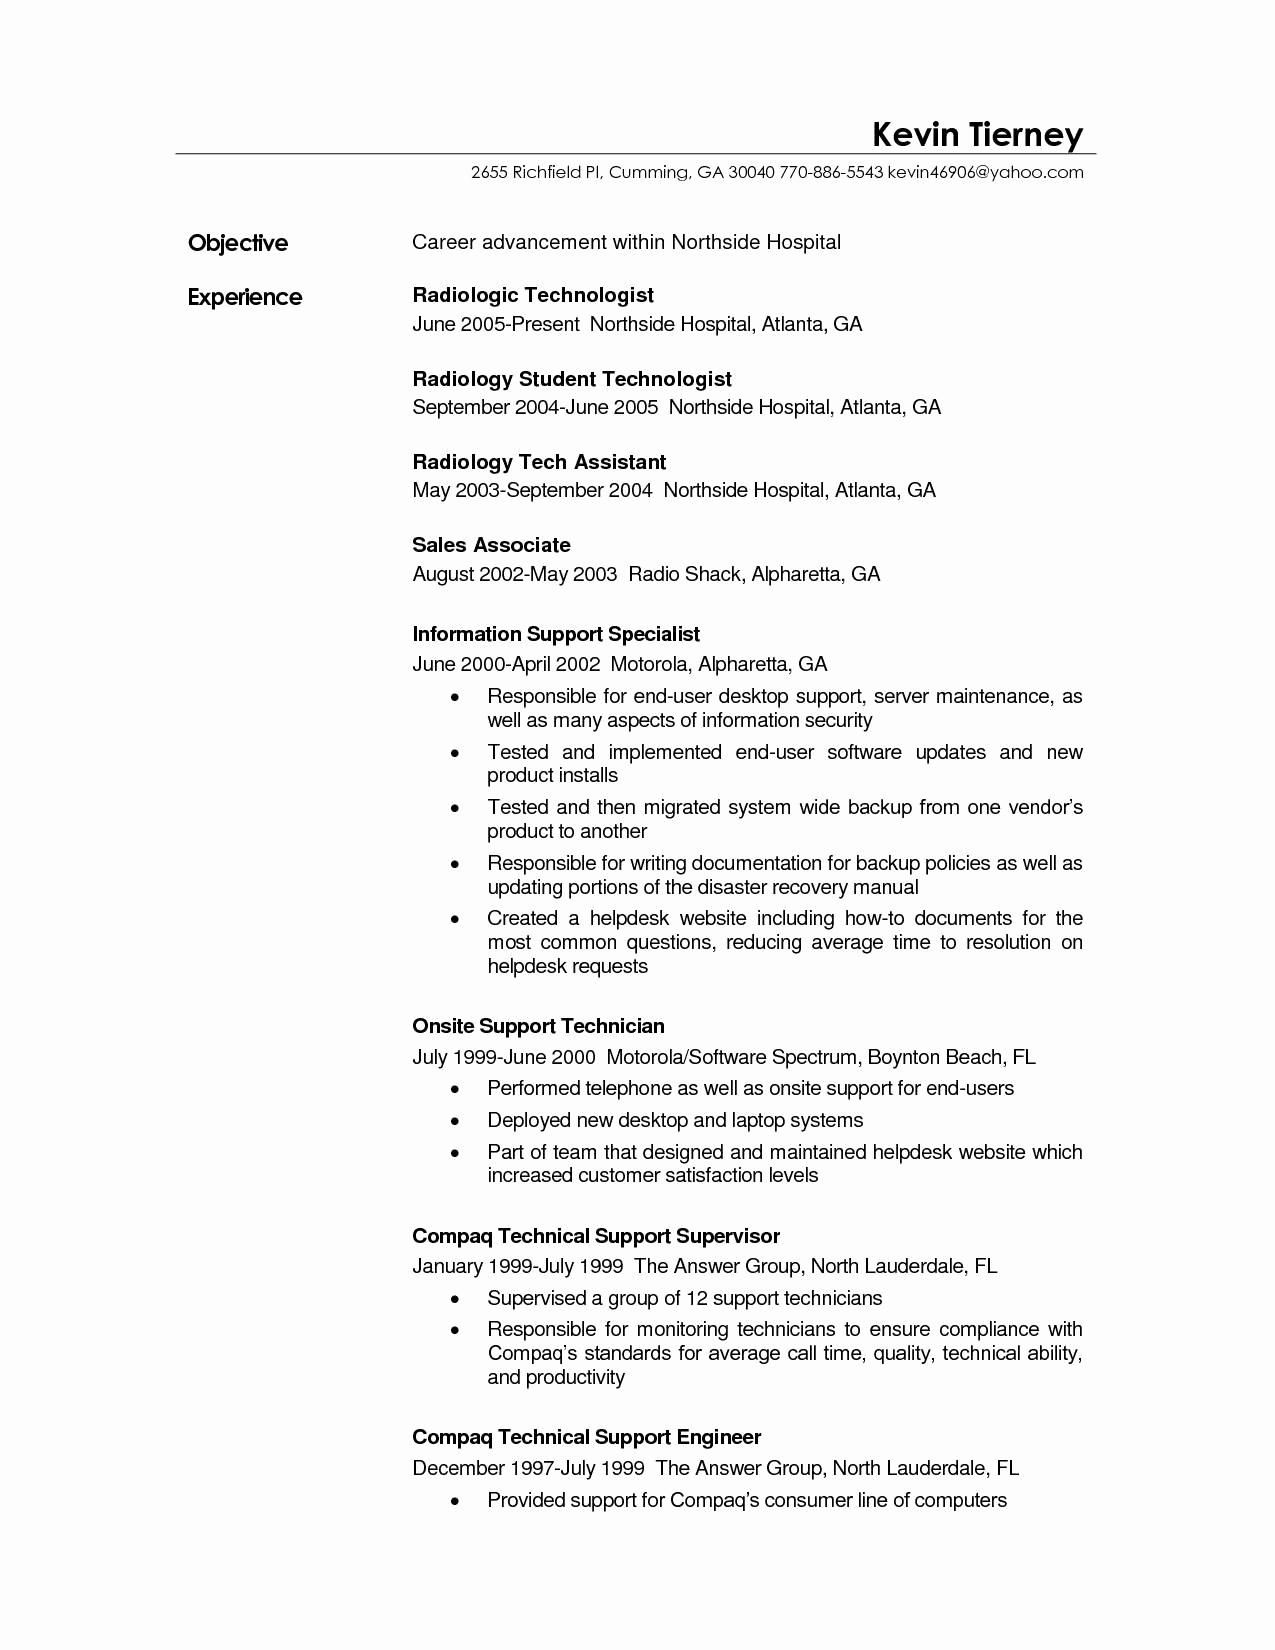 surgical technician resume template Collection-37 Fresh Surgical Tech Resume Sample 20-j